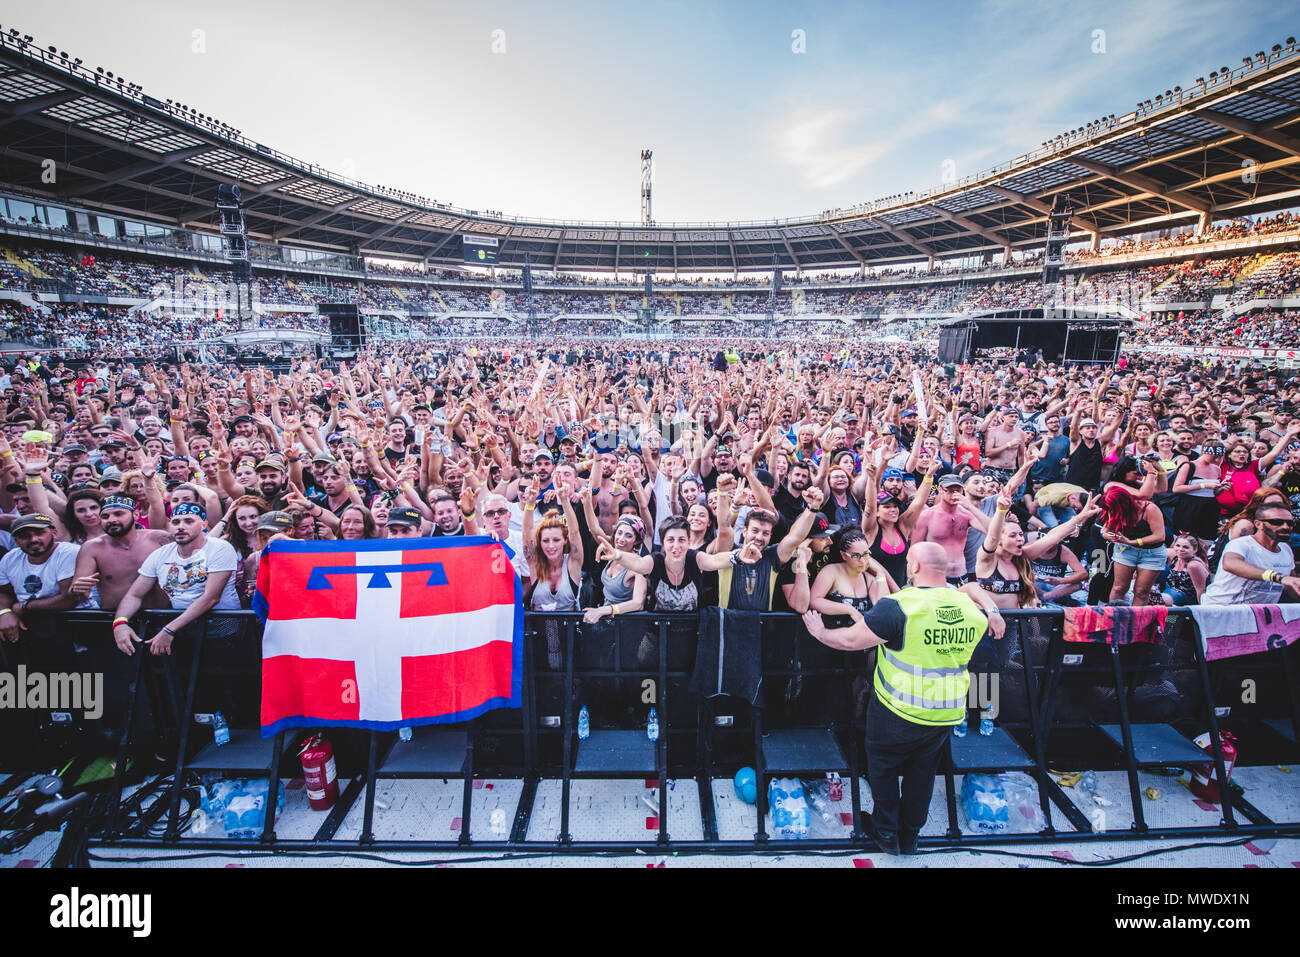 Vasco Date Tour 2015 Vasco Rossi Stock Photos And Vasco Rossi Stock Images Alamy